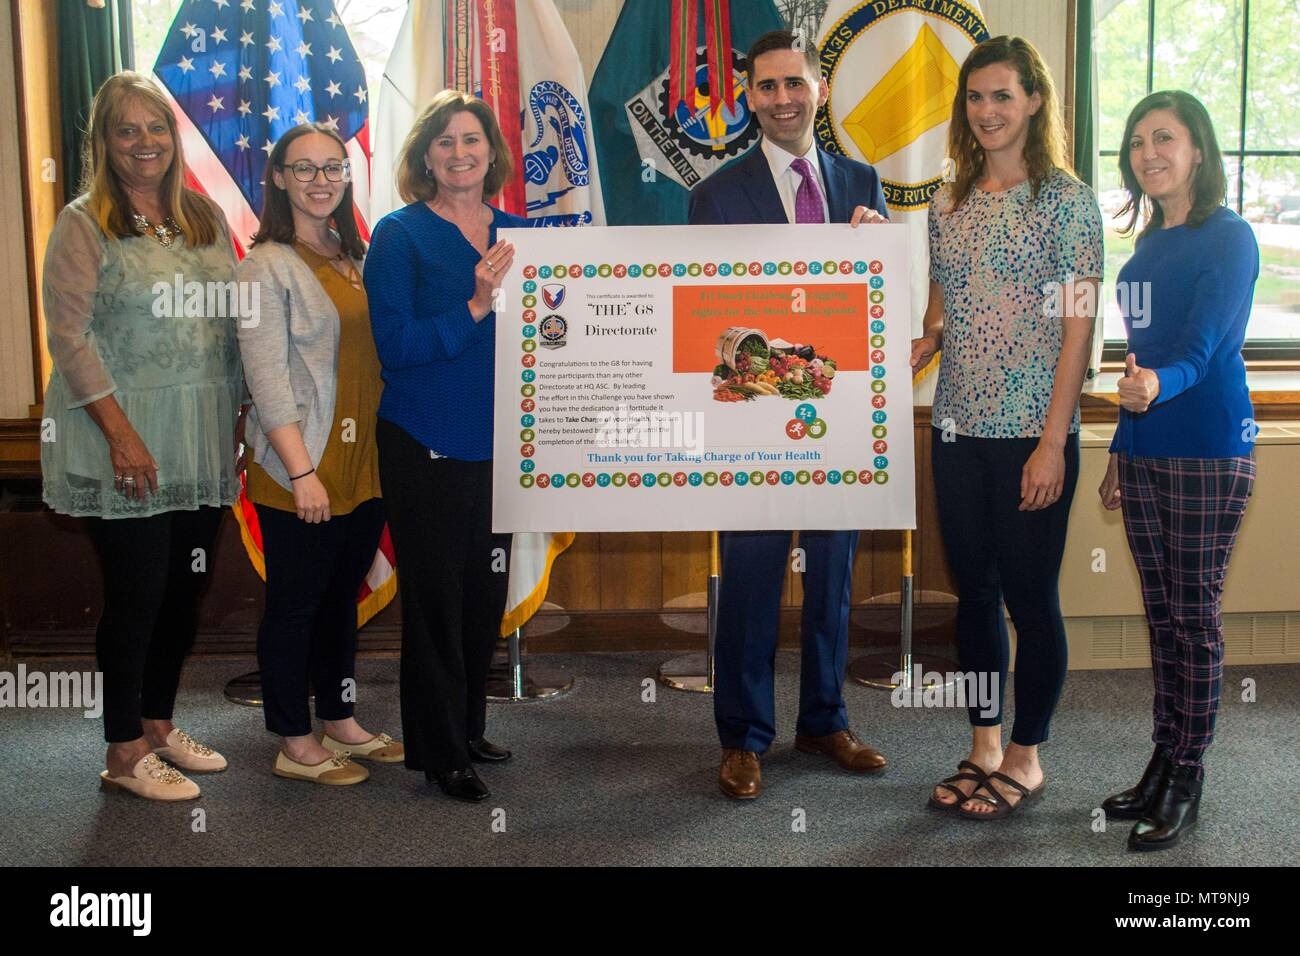 "Employees from ASC G8 (Resource Management) and Matt Sannito, ASC's executive director for Support Operations, pose with the ""Bragging Rights Award"" presented to G8 for having the most participants in the Fit Food Challenge.  The initiative wrapped up on May 14 with a ceremony honoring the 218 employees from ASC and other organizations on Rock Island Arsenal who completed the challenge, sponsored by ASC's Wellness Division. (Photo by Linda Lambiotte, ASC Public Affairs) - Stock Image"